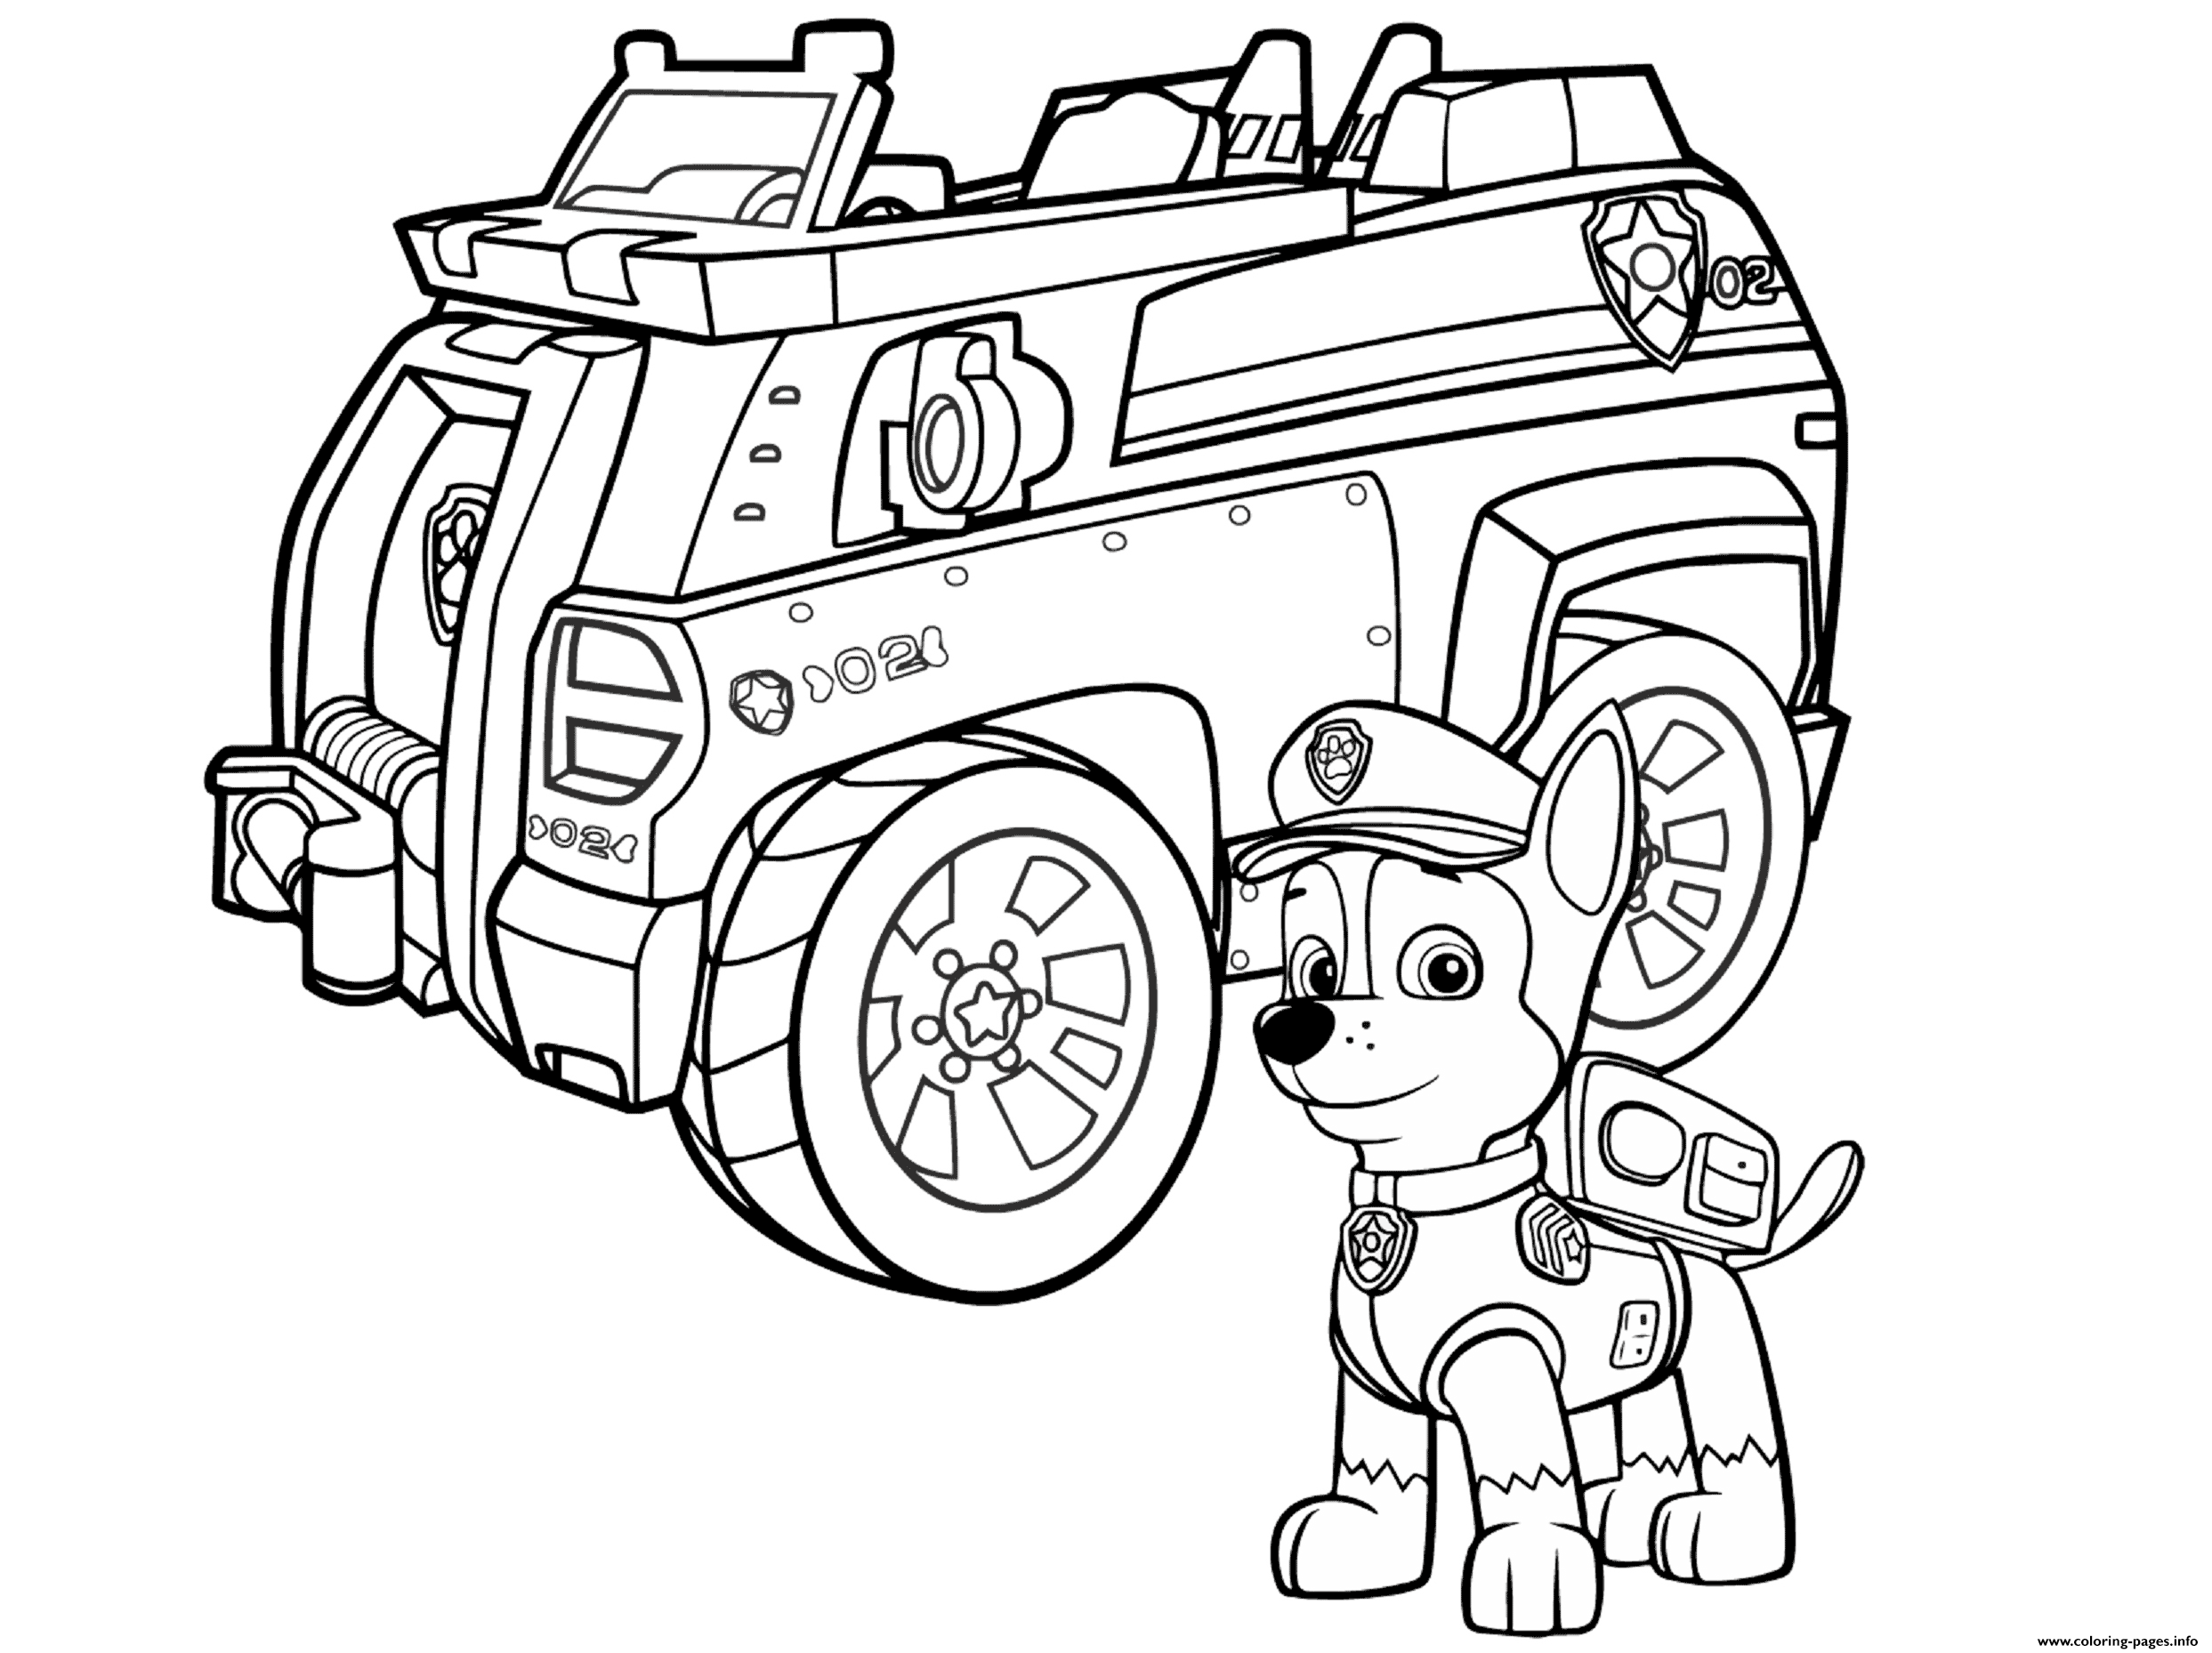 free download paw patrol chase police car coloring pages printable